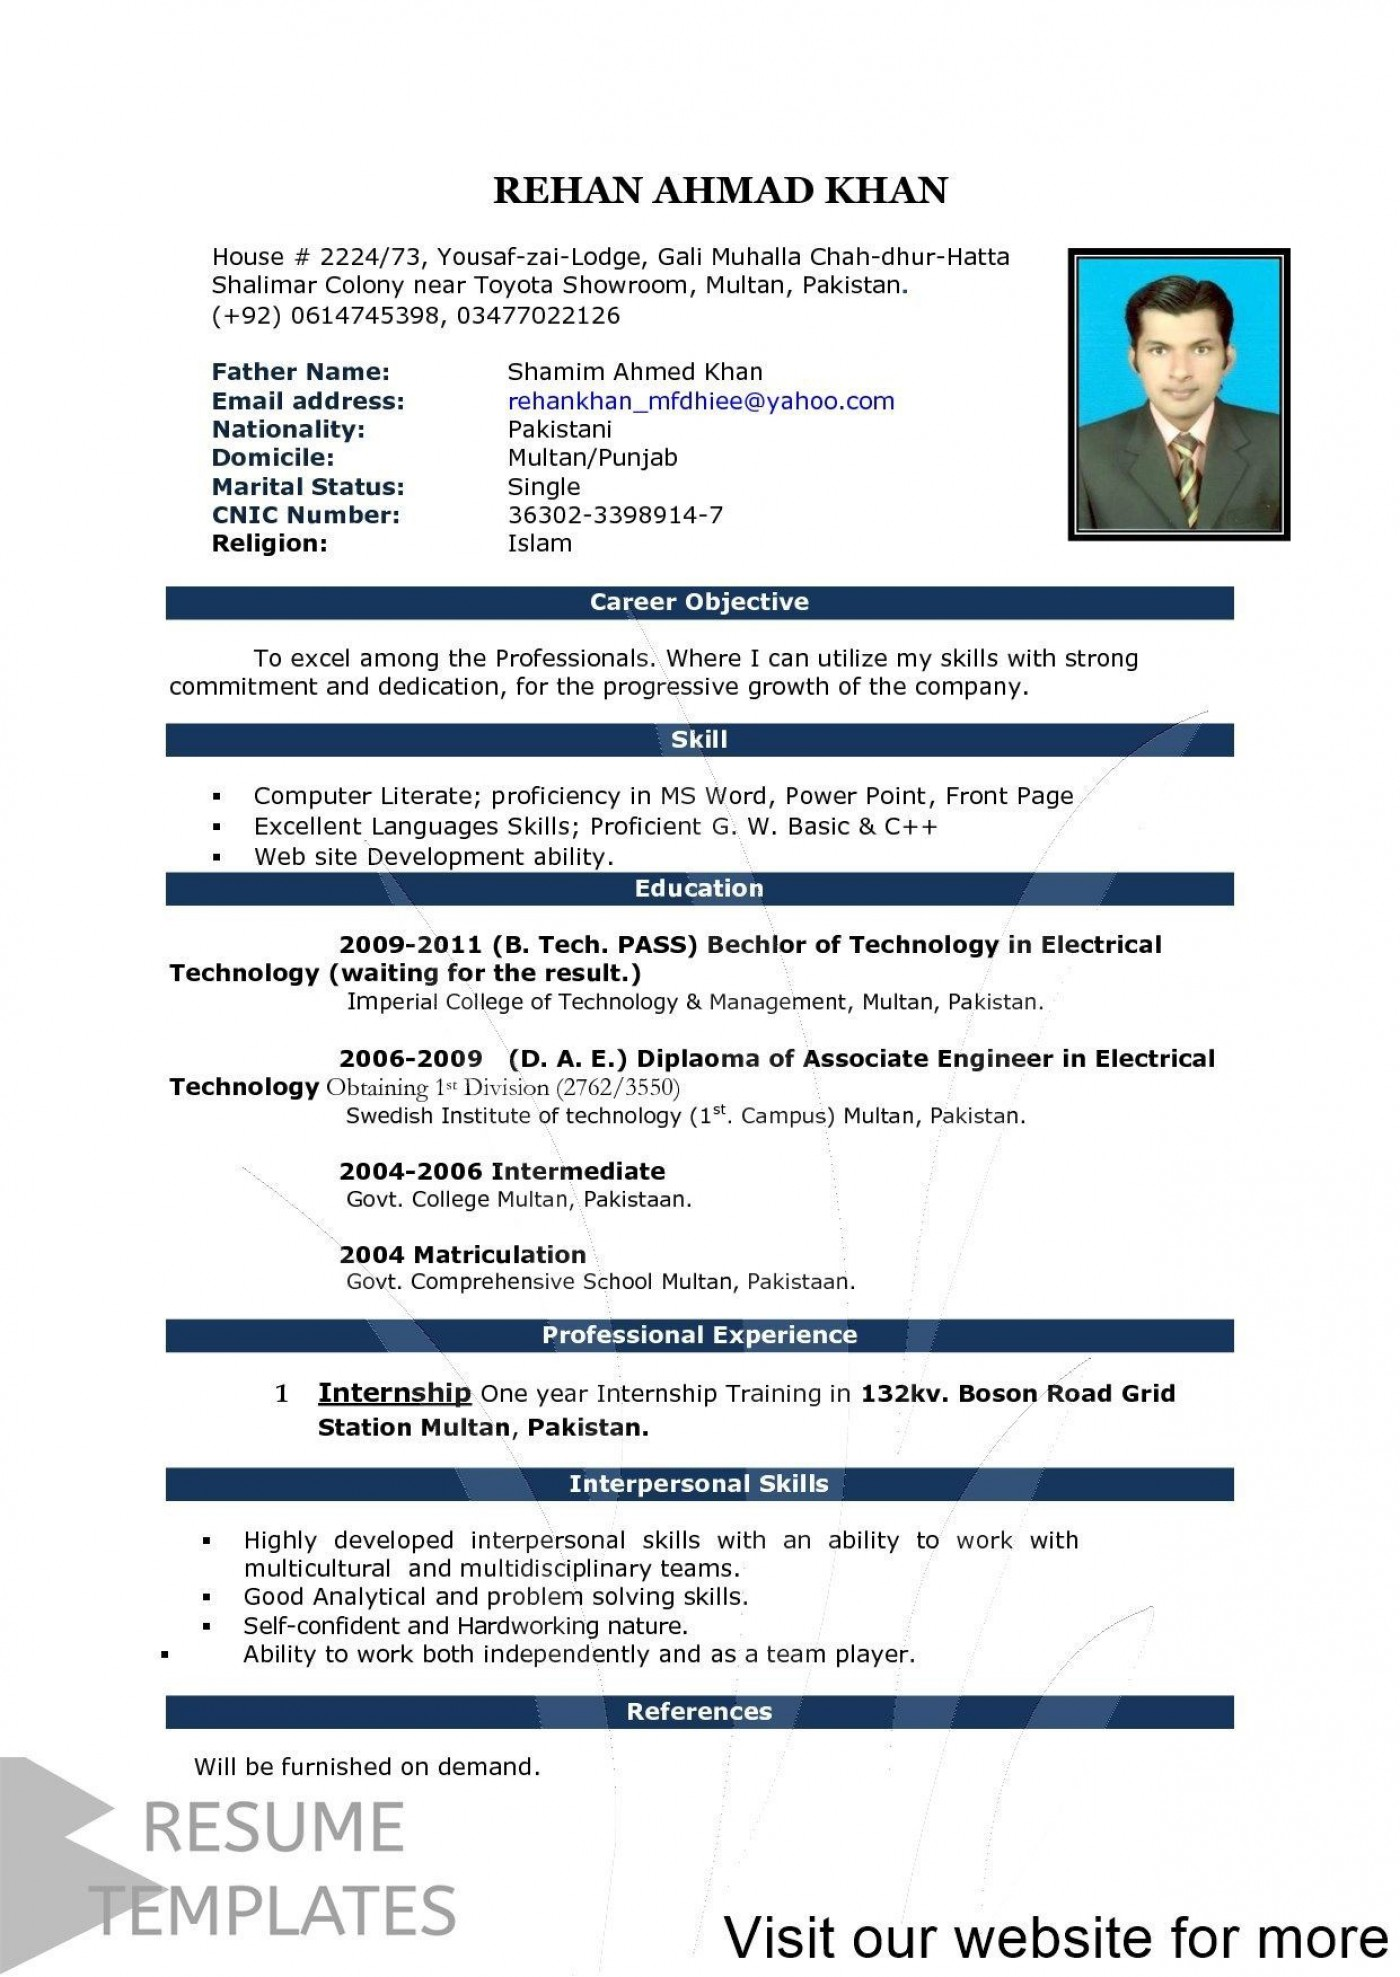 000 Simple How To Create A Resume Template In Word 2020 Inspiration 1400